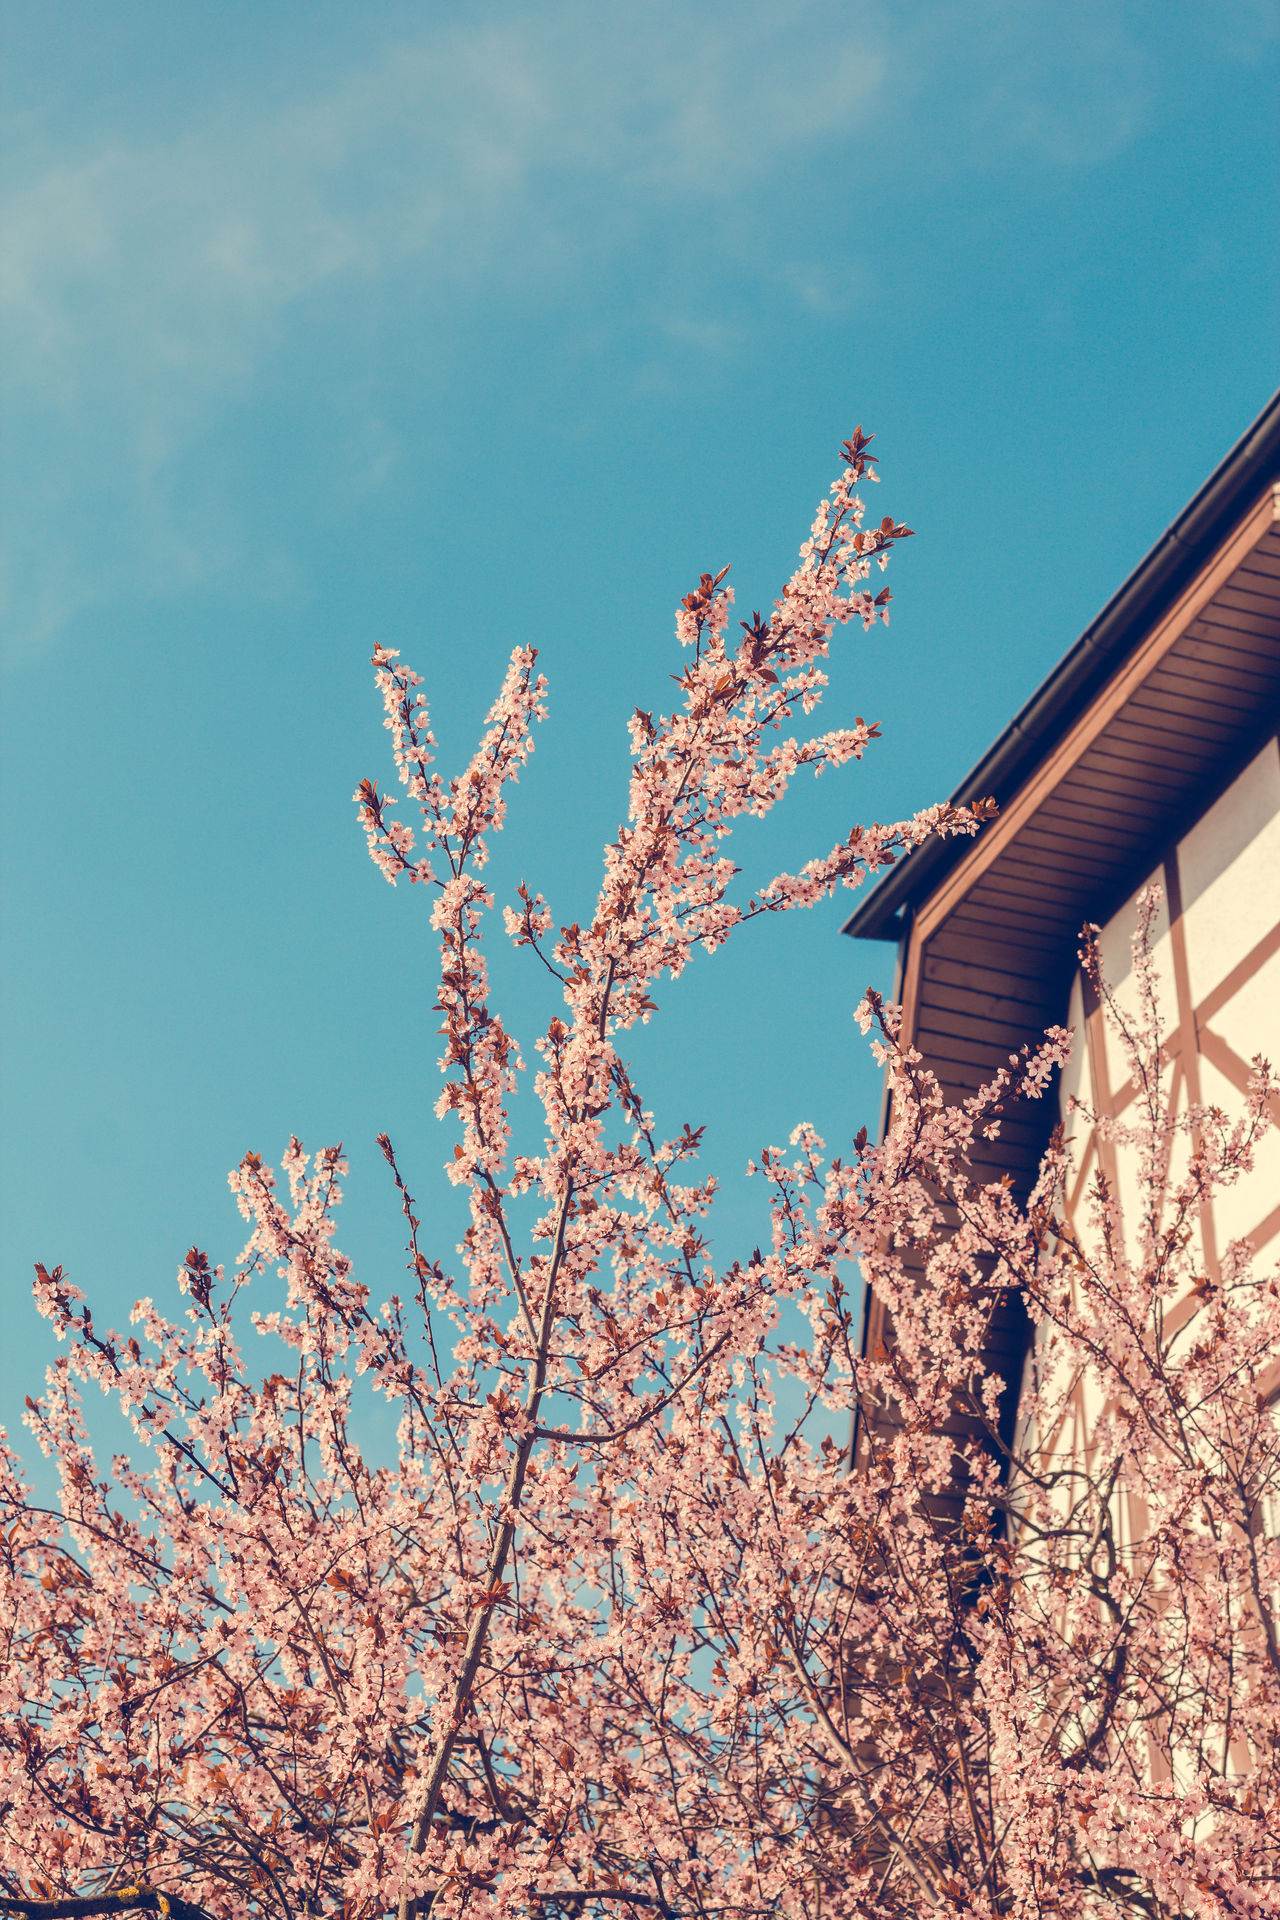 Kirschblüue Architecture Beauty In Nature Blossom Branch Cherry Blossoms Close-up Day Flower Growth Kirschblüten  Low Angle View Nature No People Outdoors Sky Spring Tree